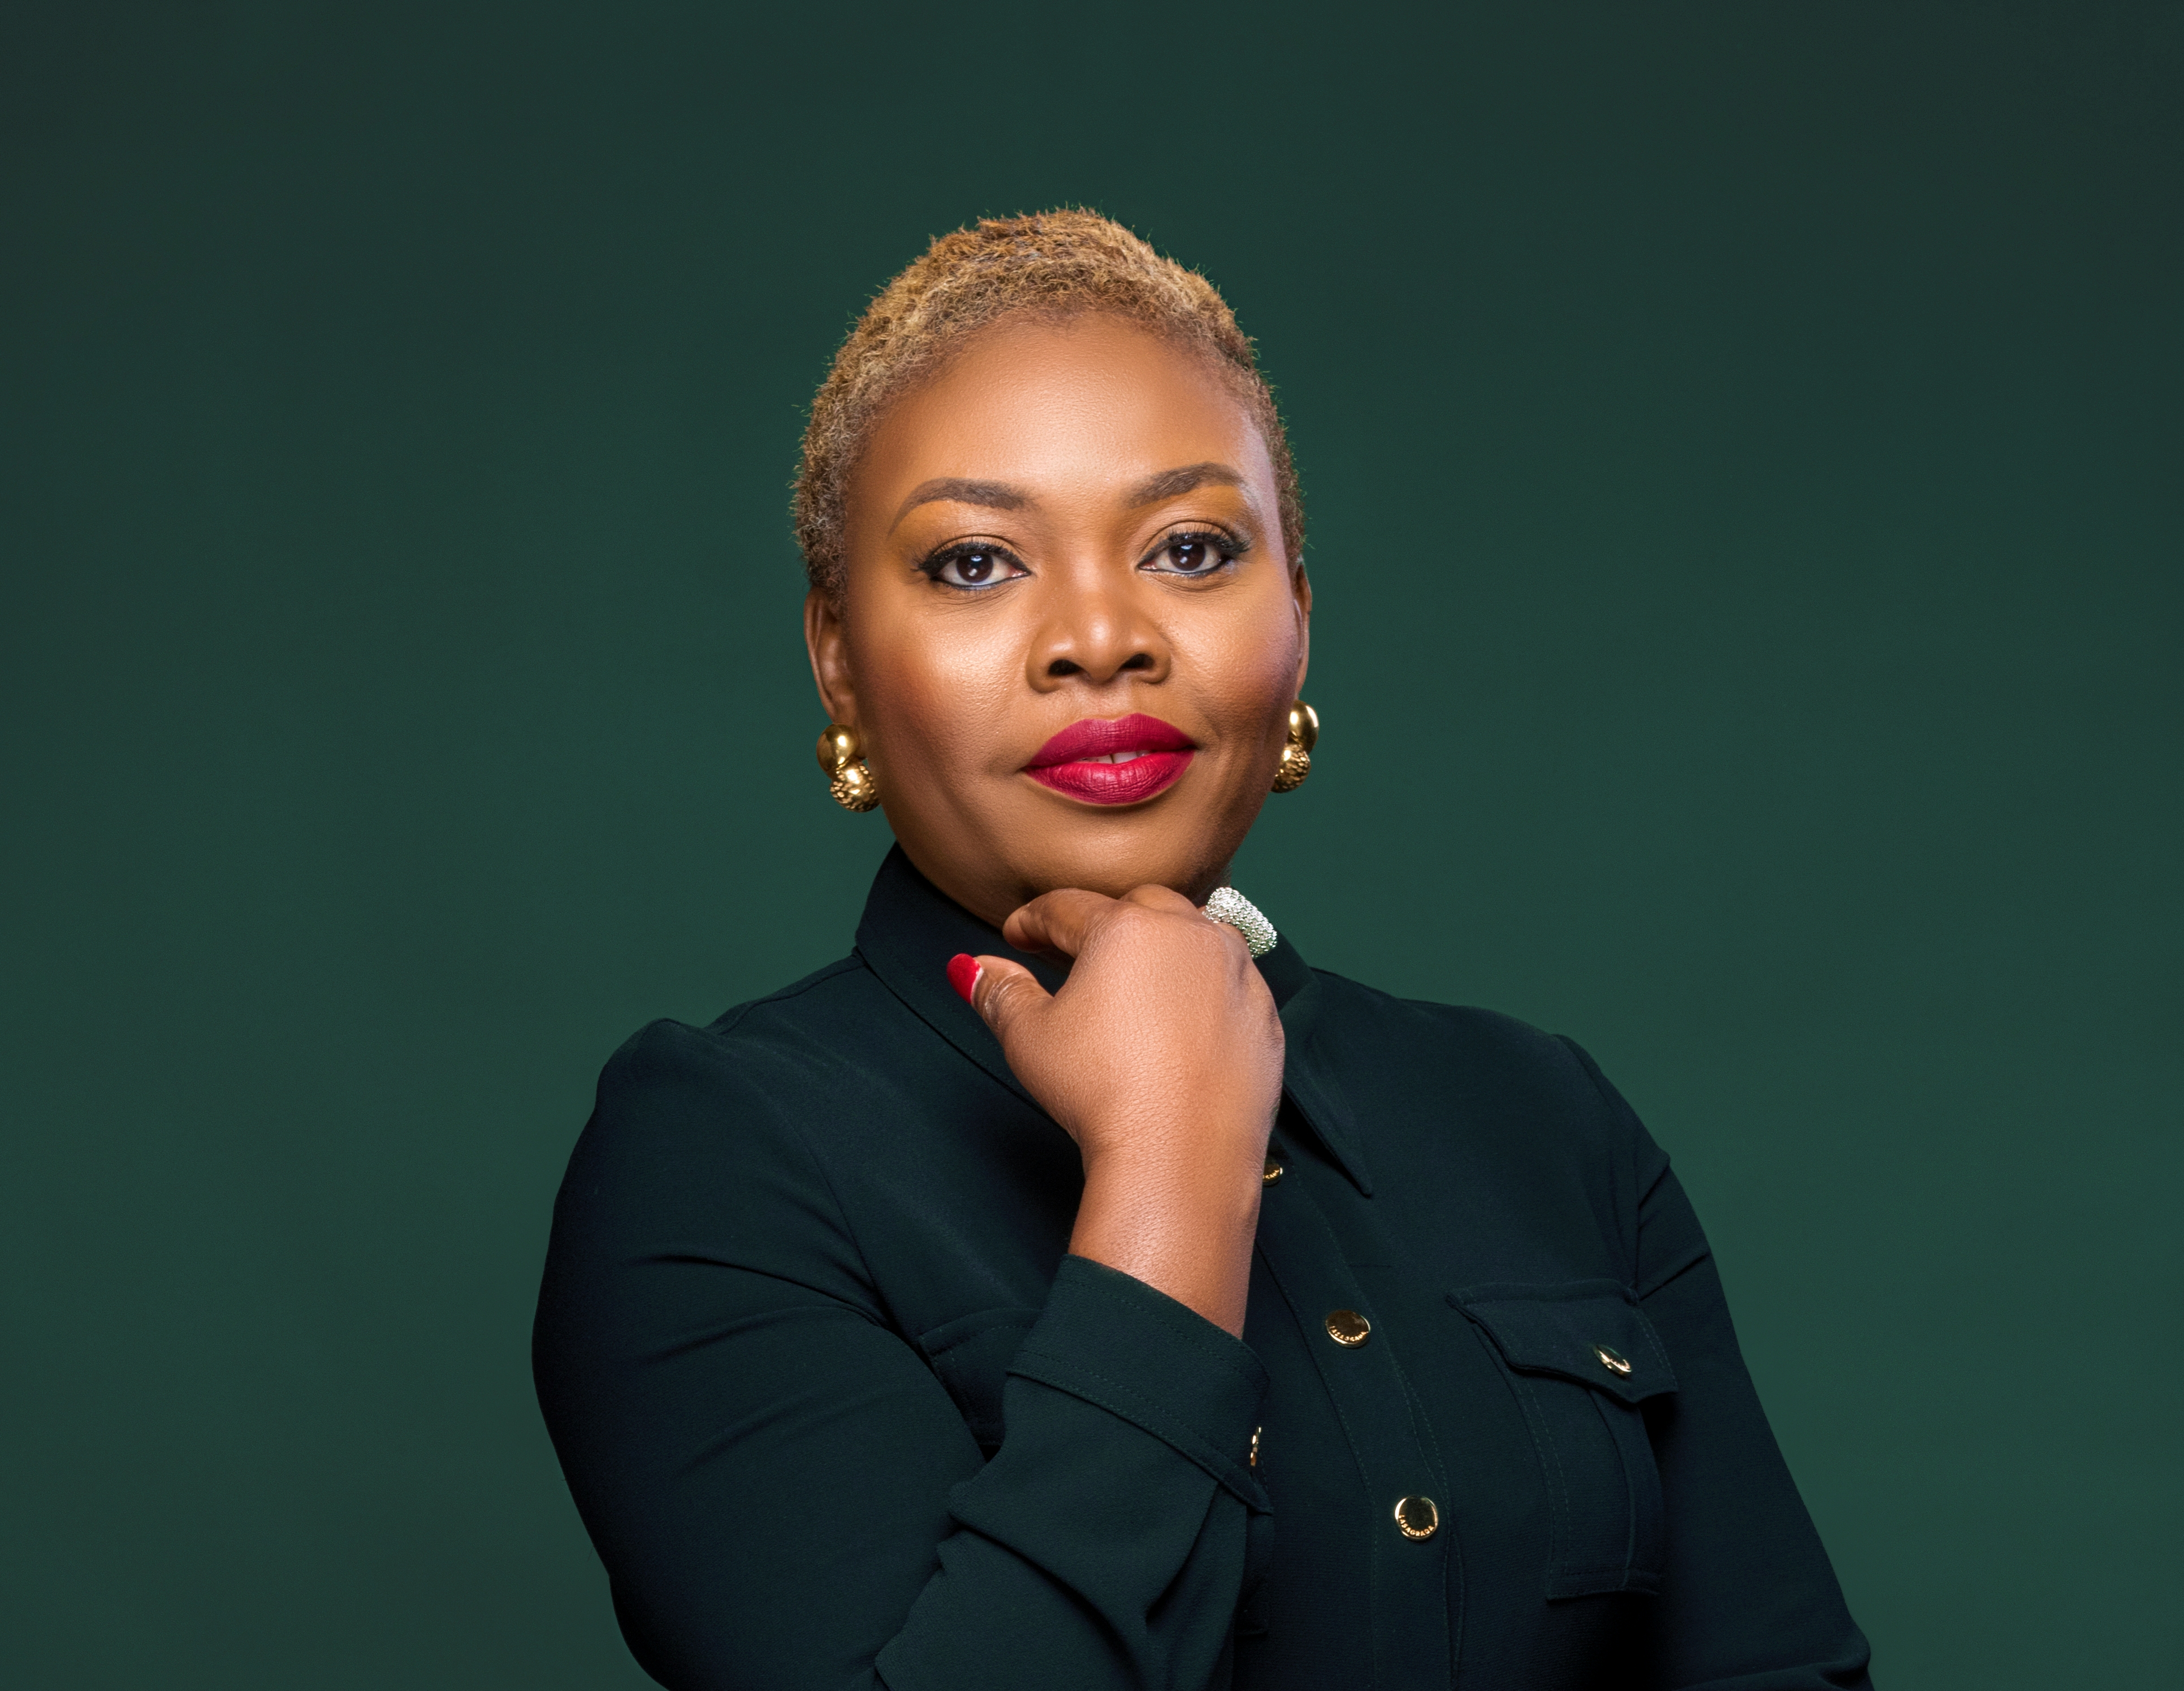 Cherry Eromosele the corporate force - the spark youth empowerment platform in Nigeria